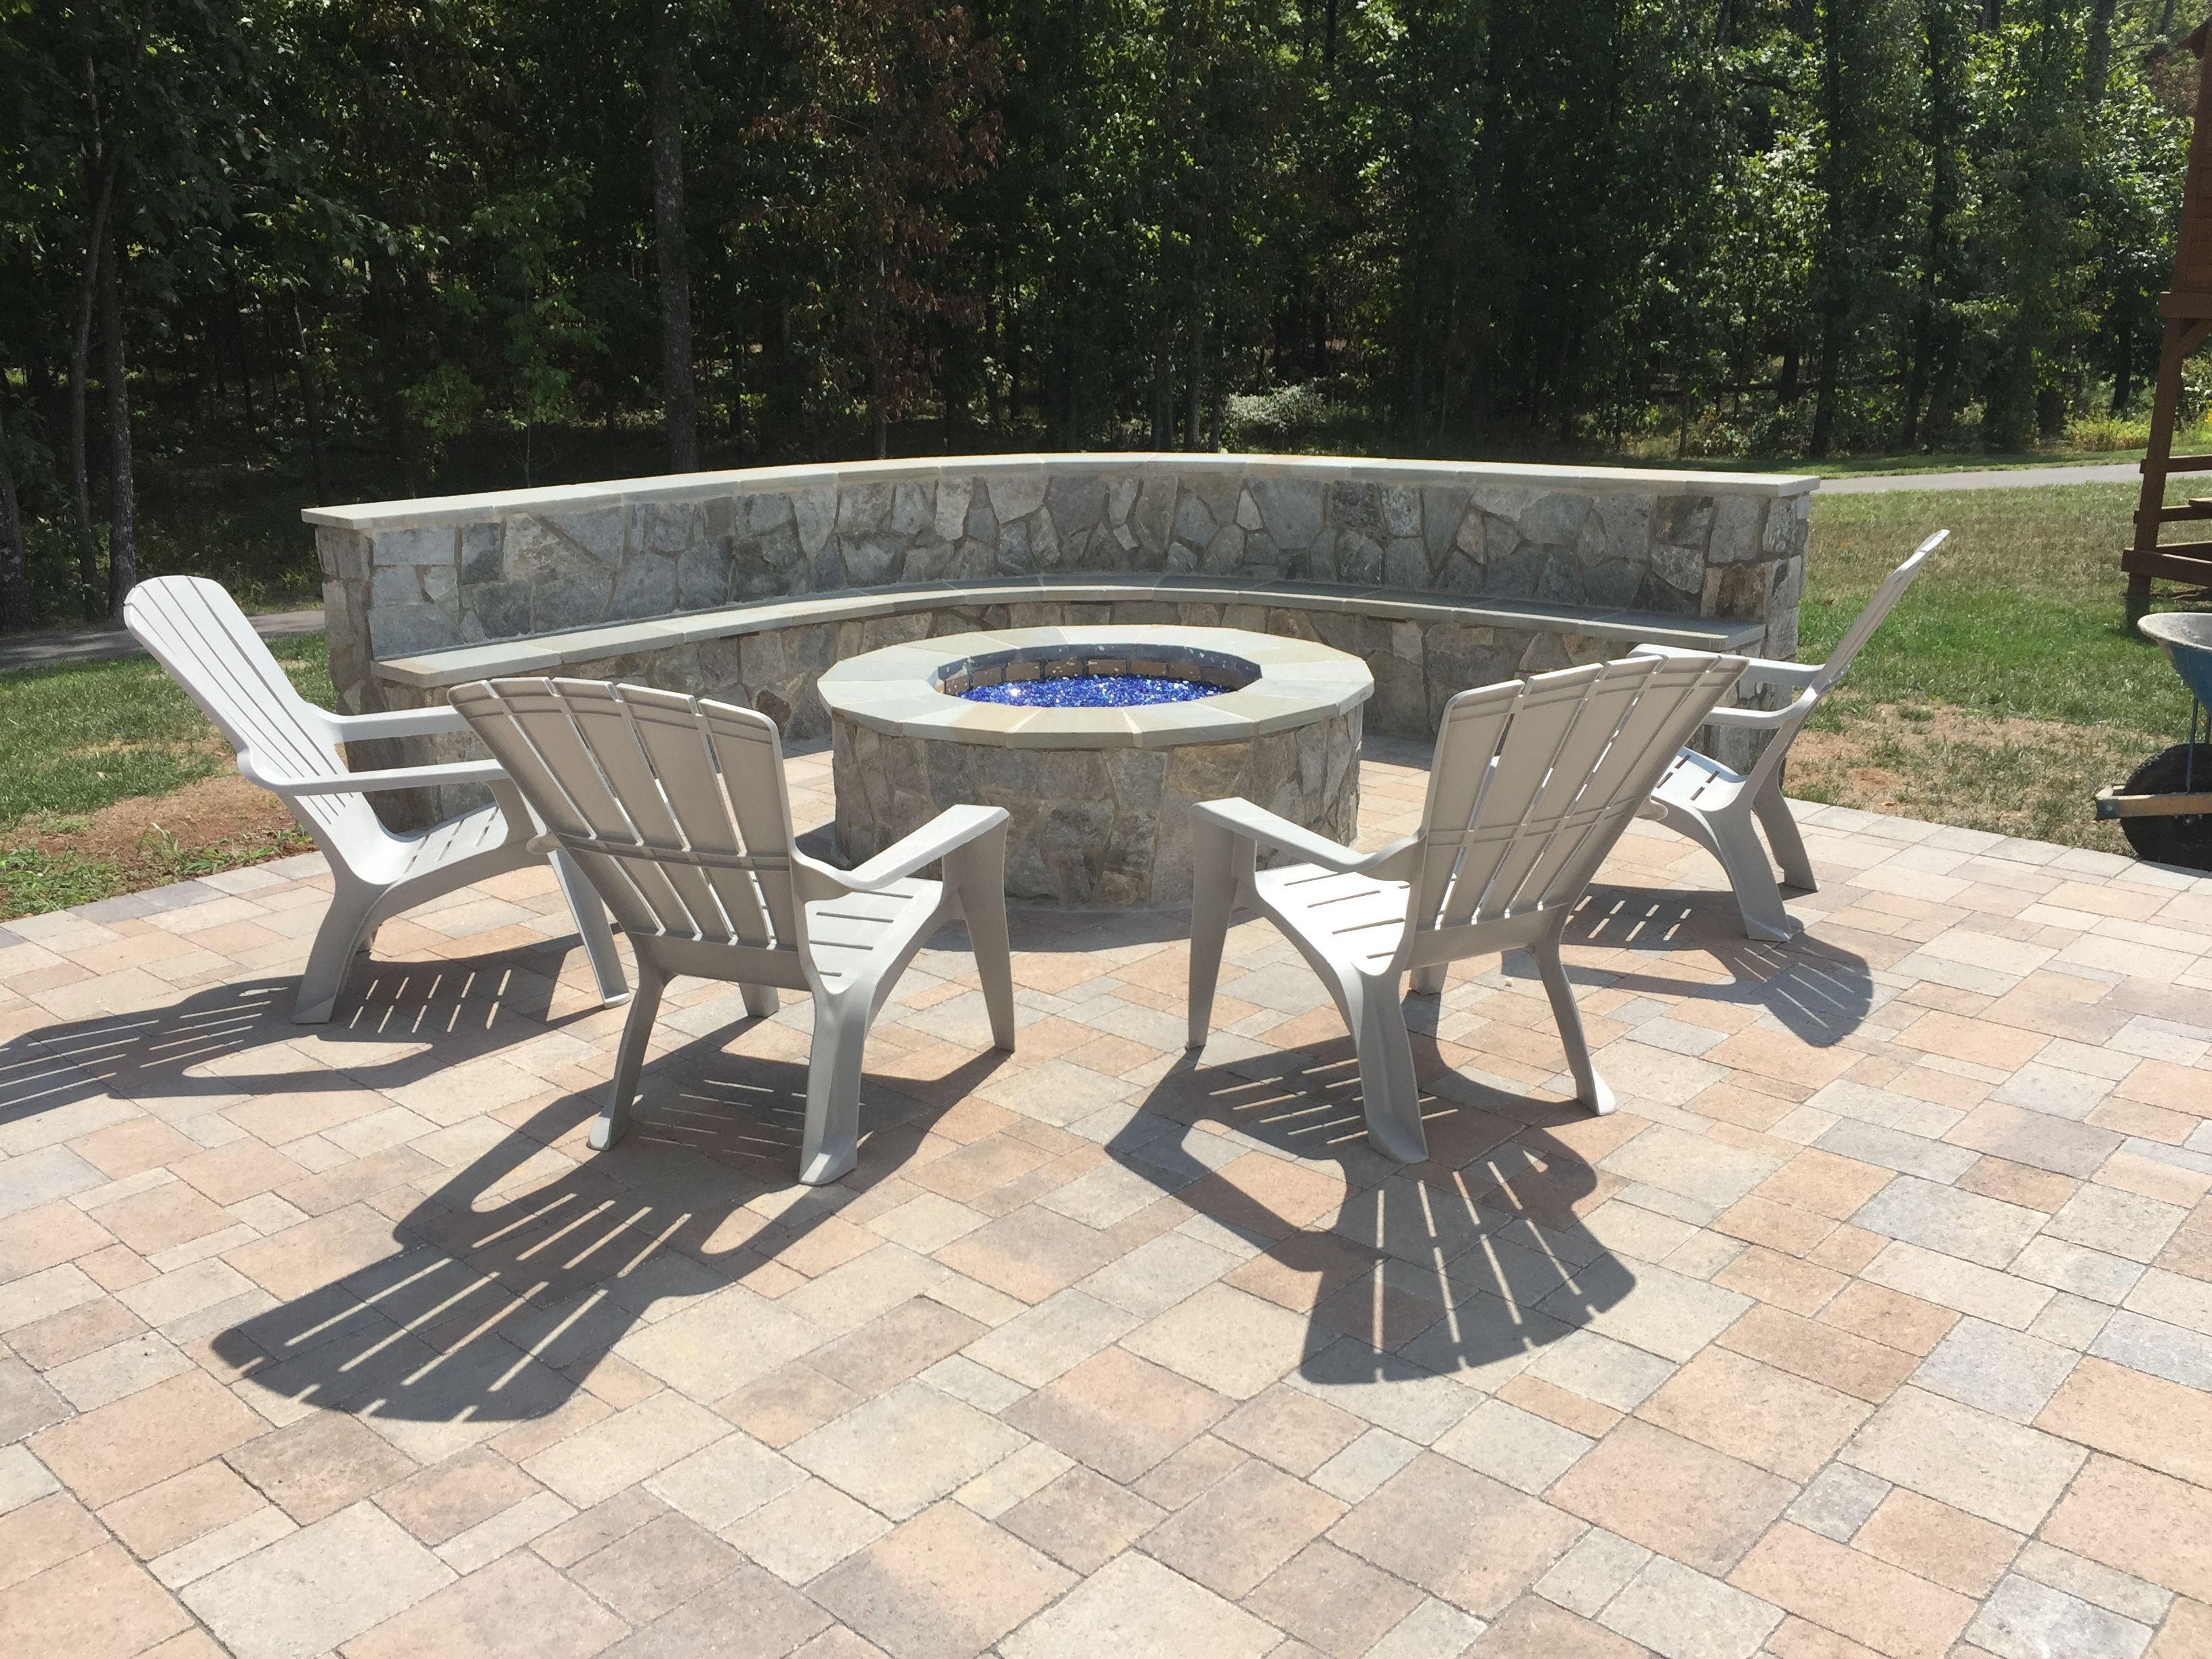 hanover paver patio stone seating wall bench outdoor gas fire pit